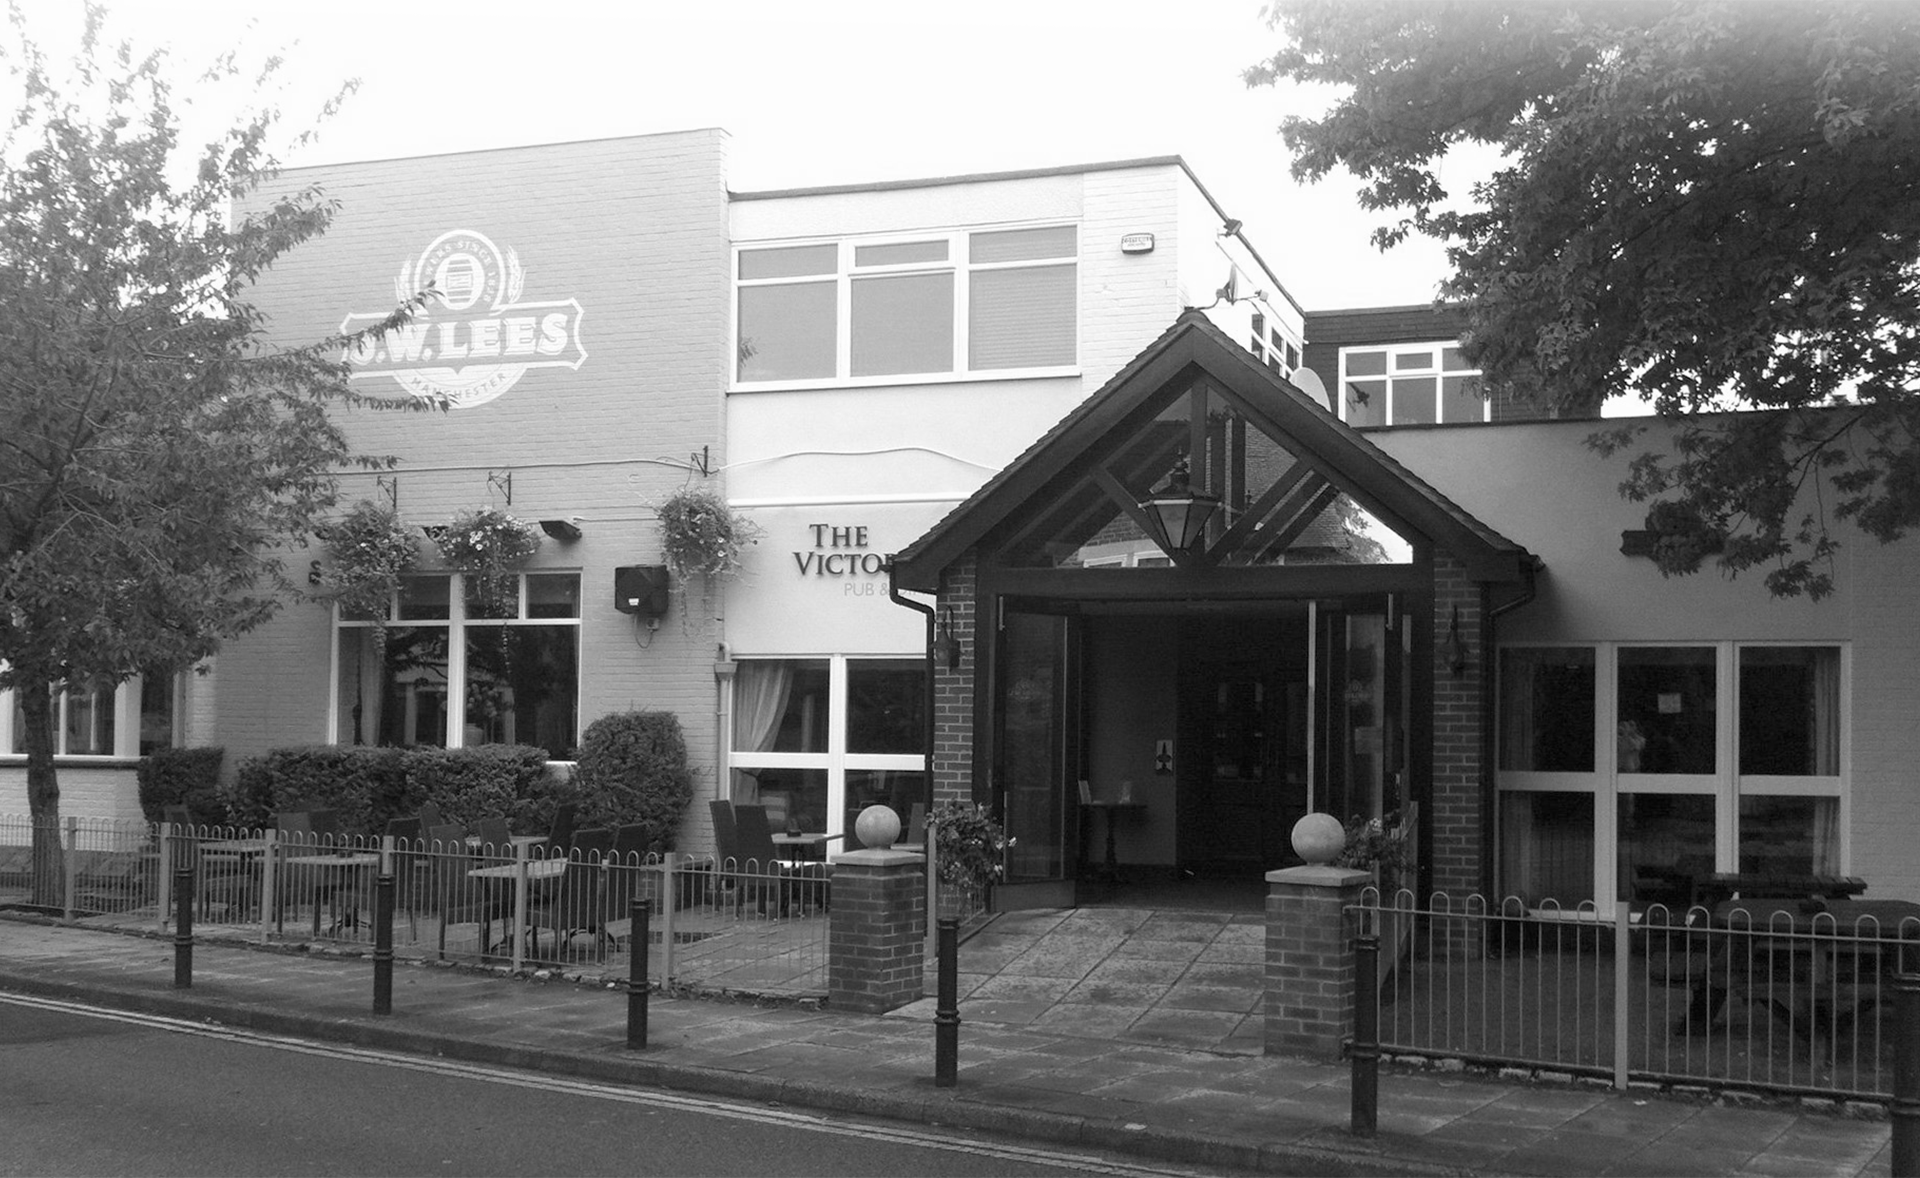 The Victorian Bramhall